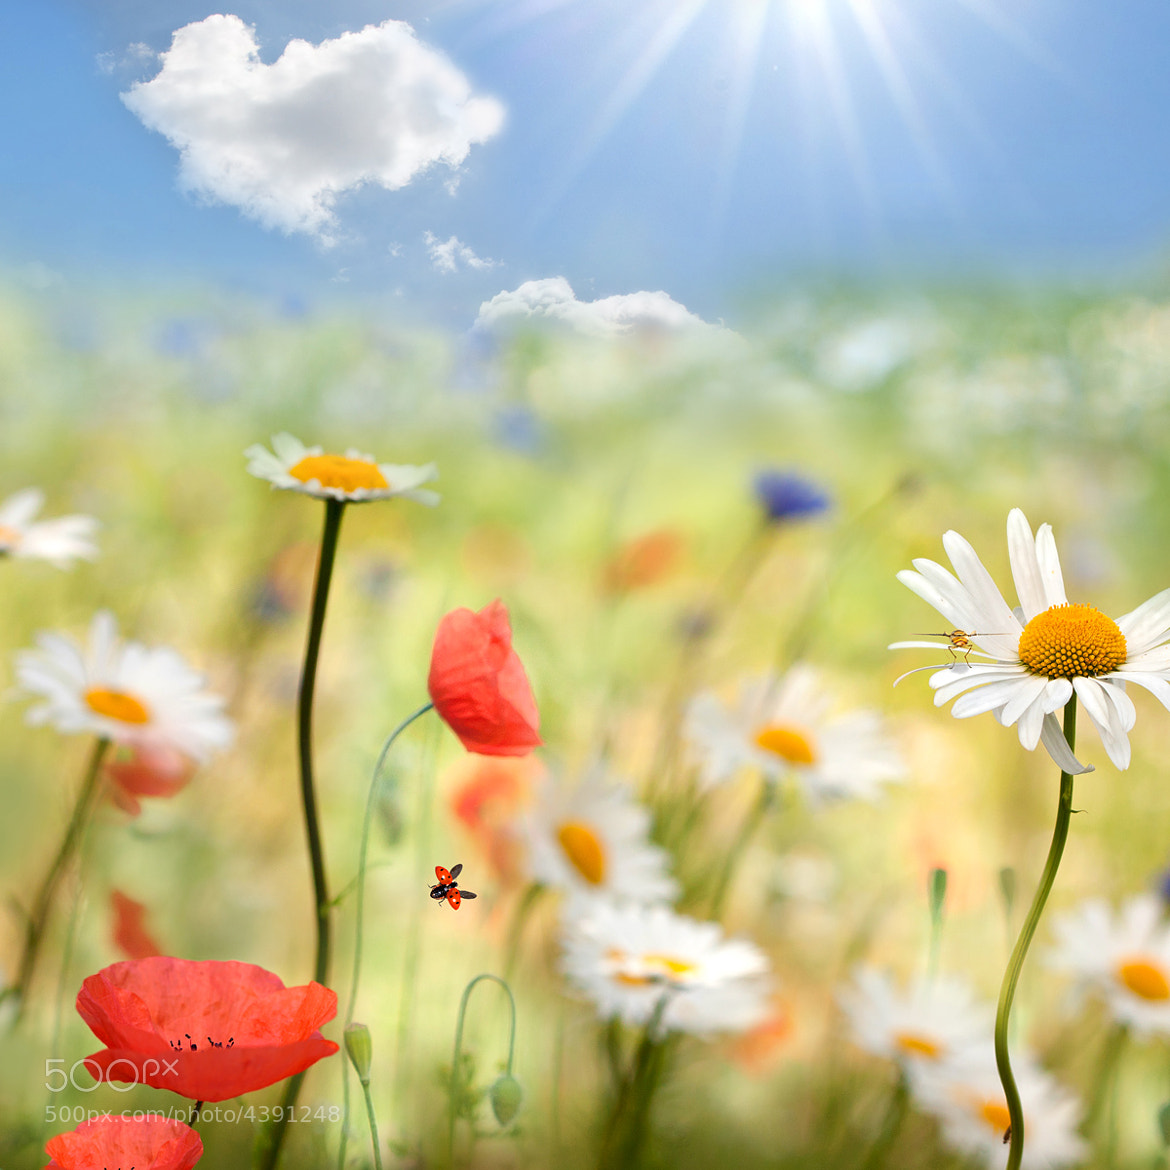 Photograph Poppies and daisies by Teuni Stevense on 500px